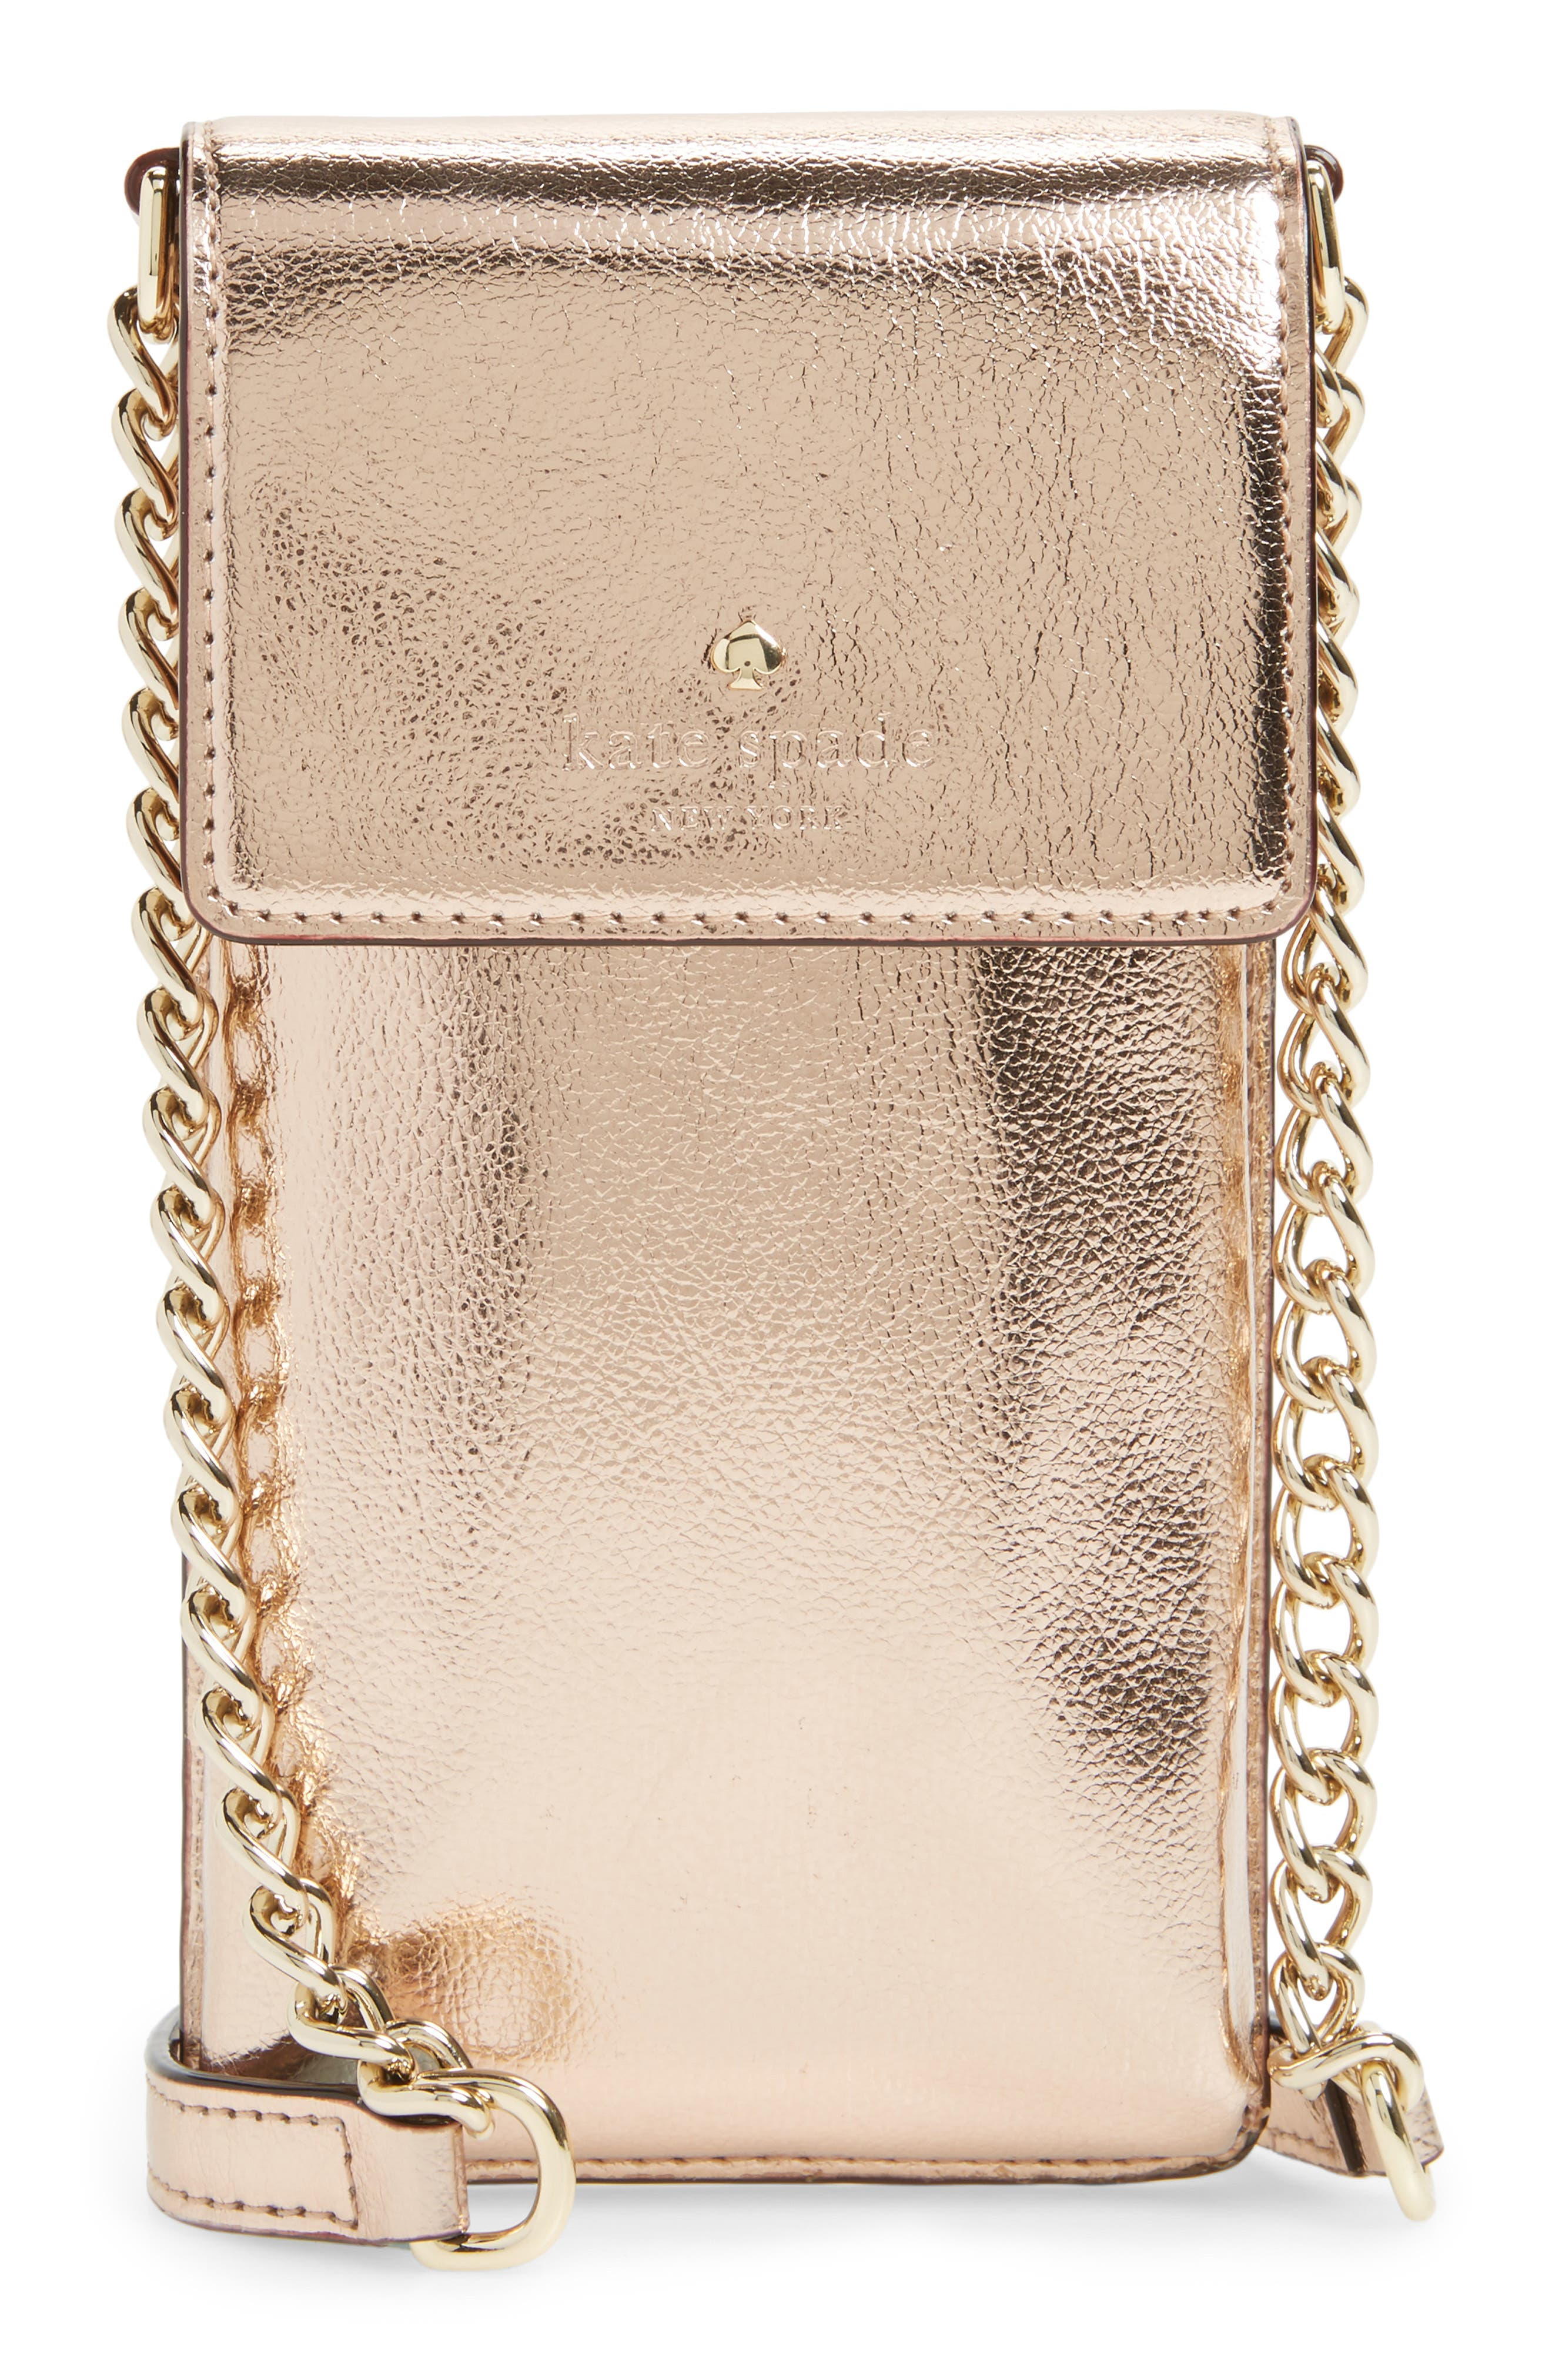 kate spade new york metallic leather smartphone crossbody bag